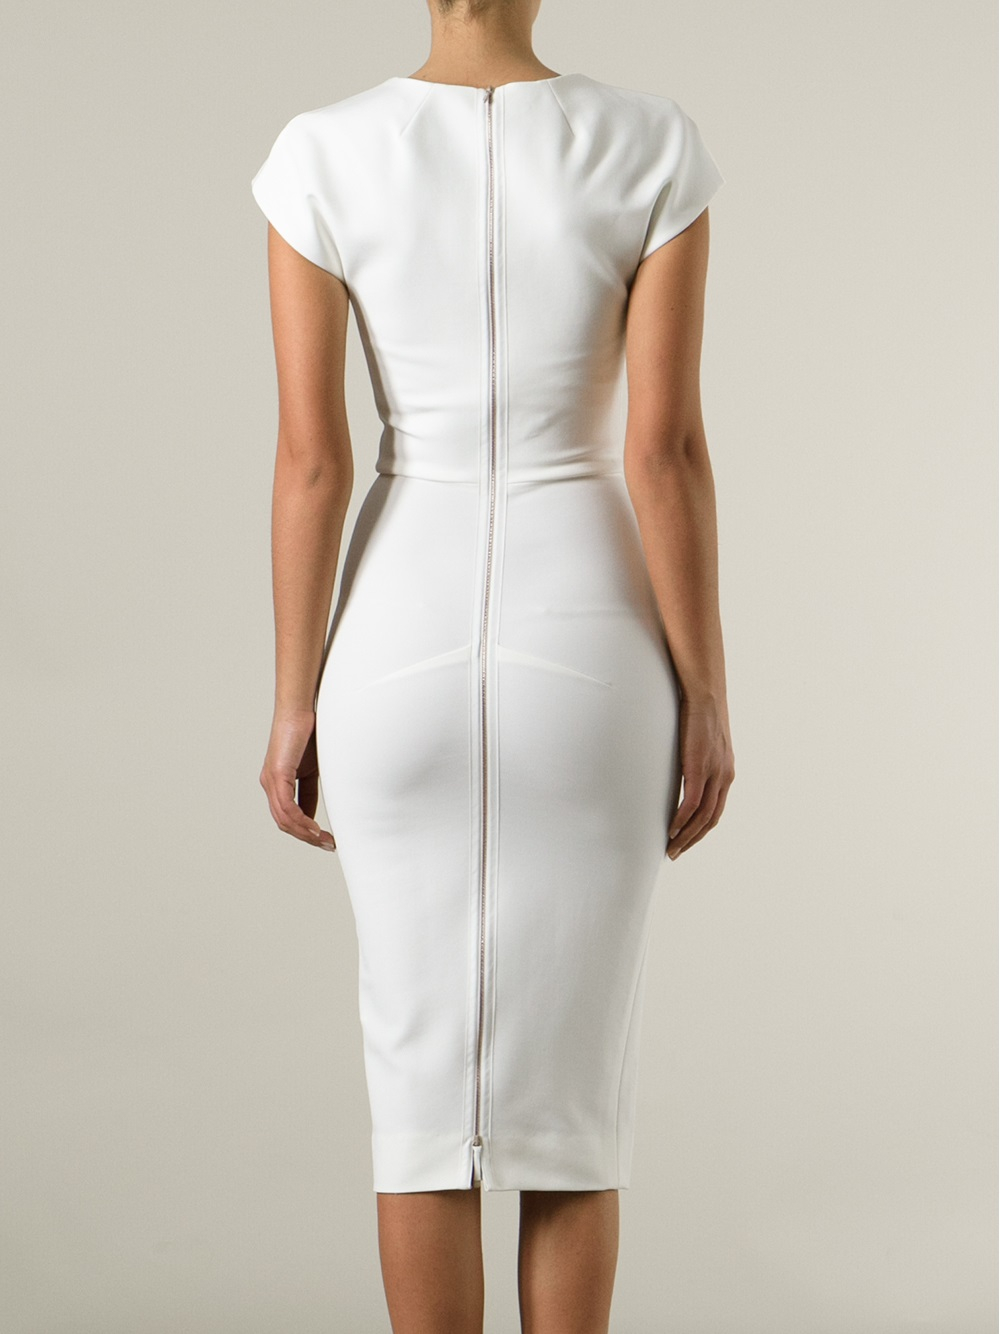 Victoria beckham Fitted Pencil Dress in White - Lyst